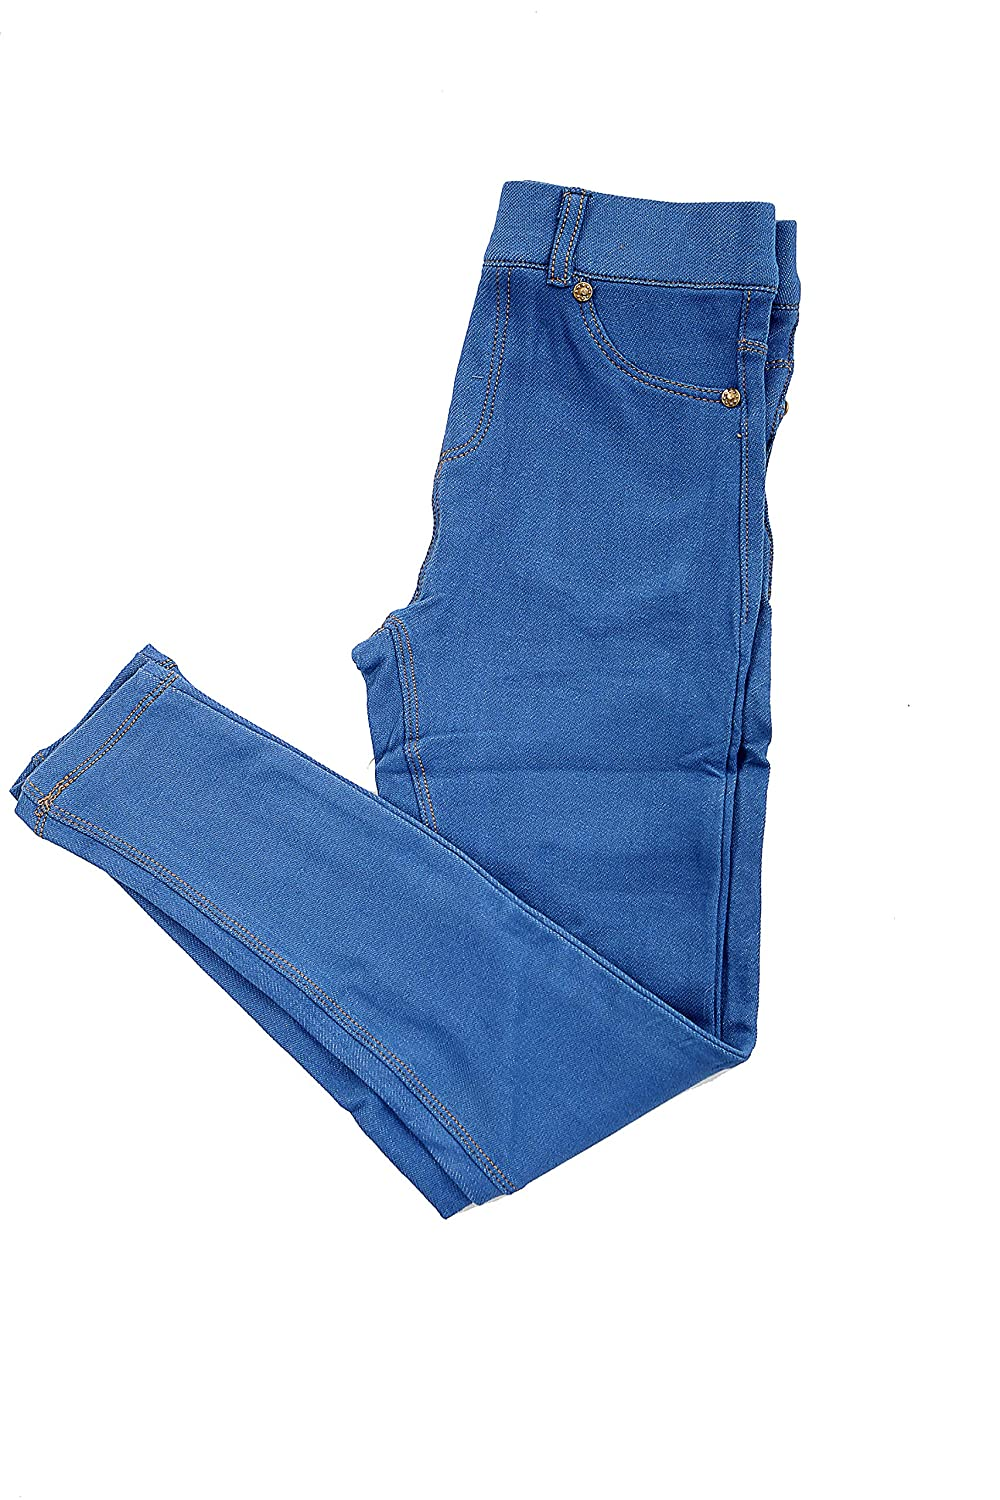 Dance Stretch Teen Royal Blue Miss Chief Girls Plain Legging Full Length Ages 2 3 4 5 6 7 8 9 10 11 12 13 + Adult Sizes